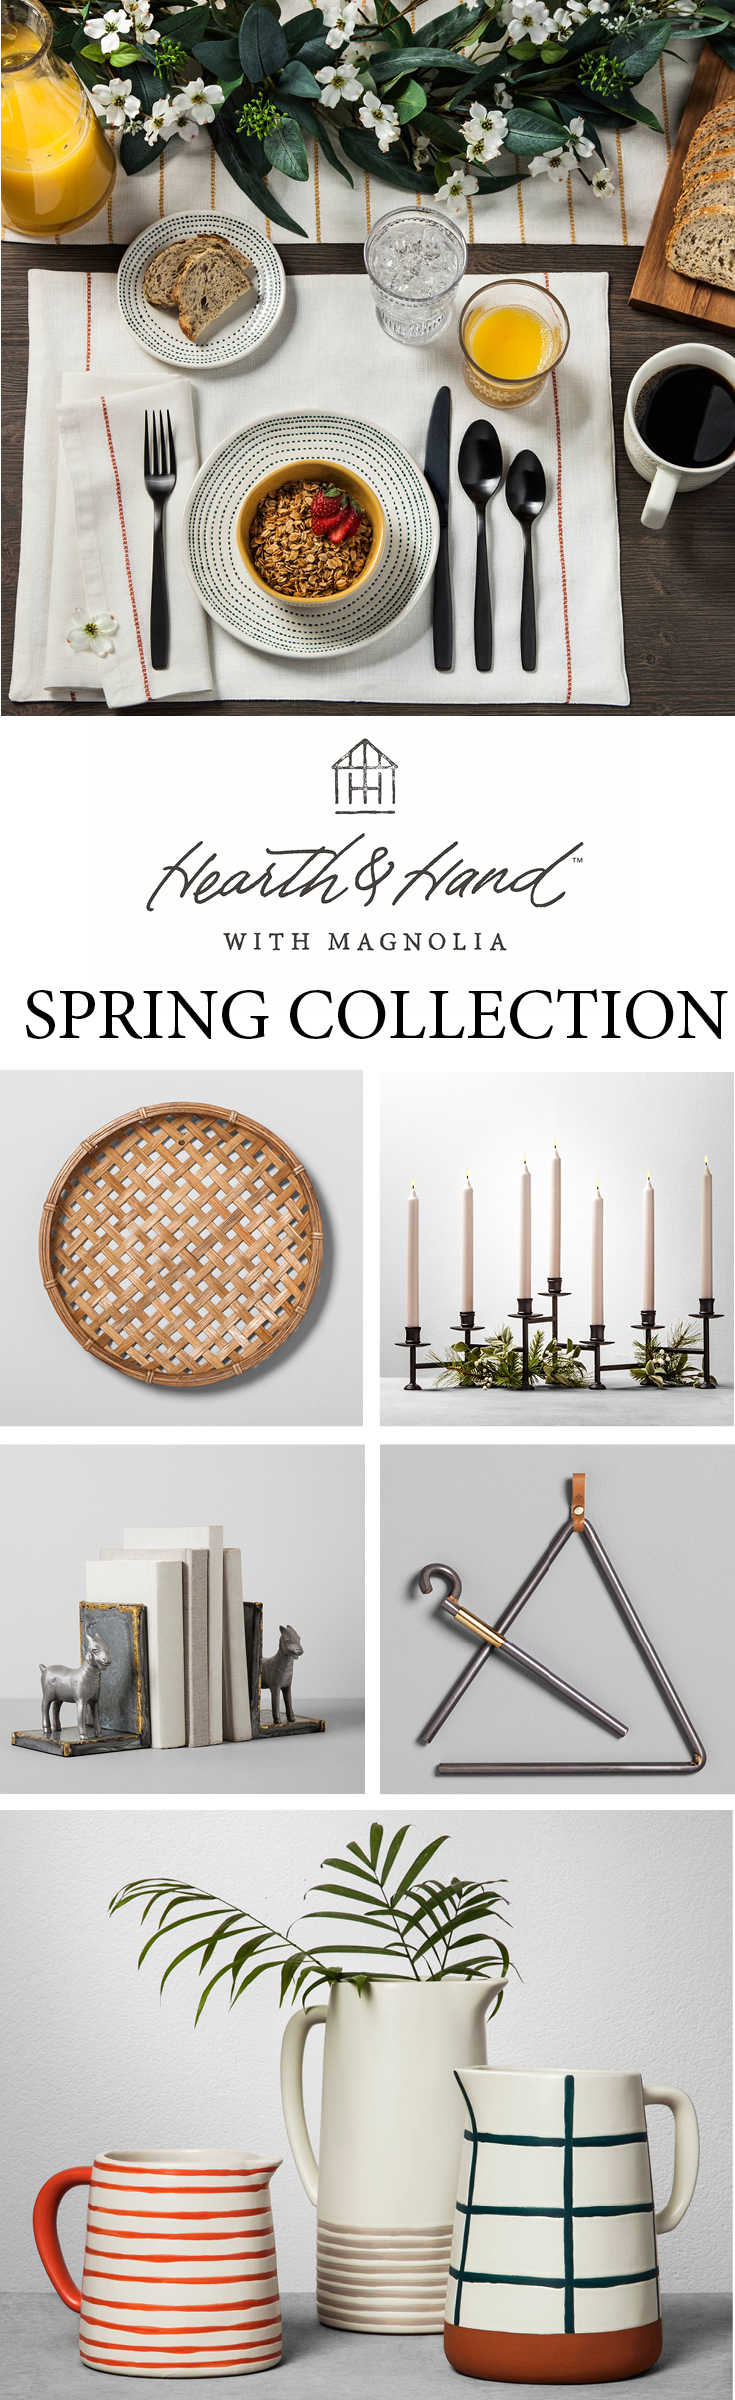 Hearth and Hand Spring Collection